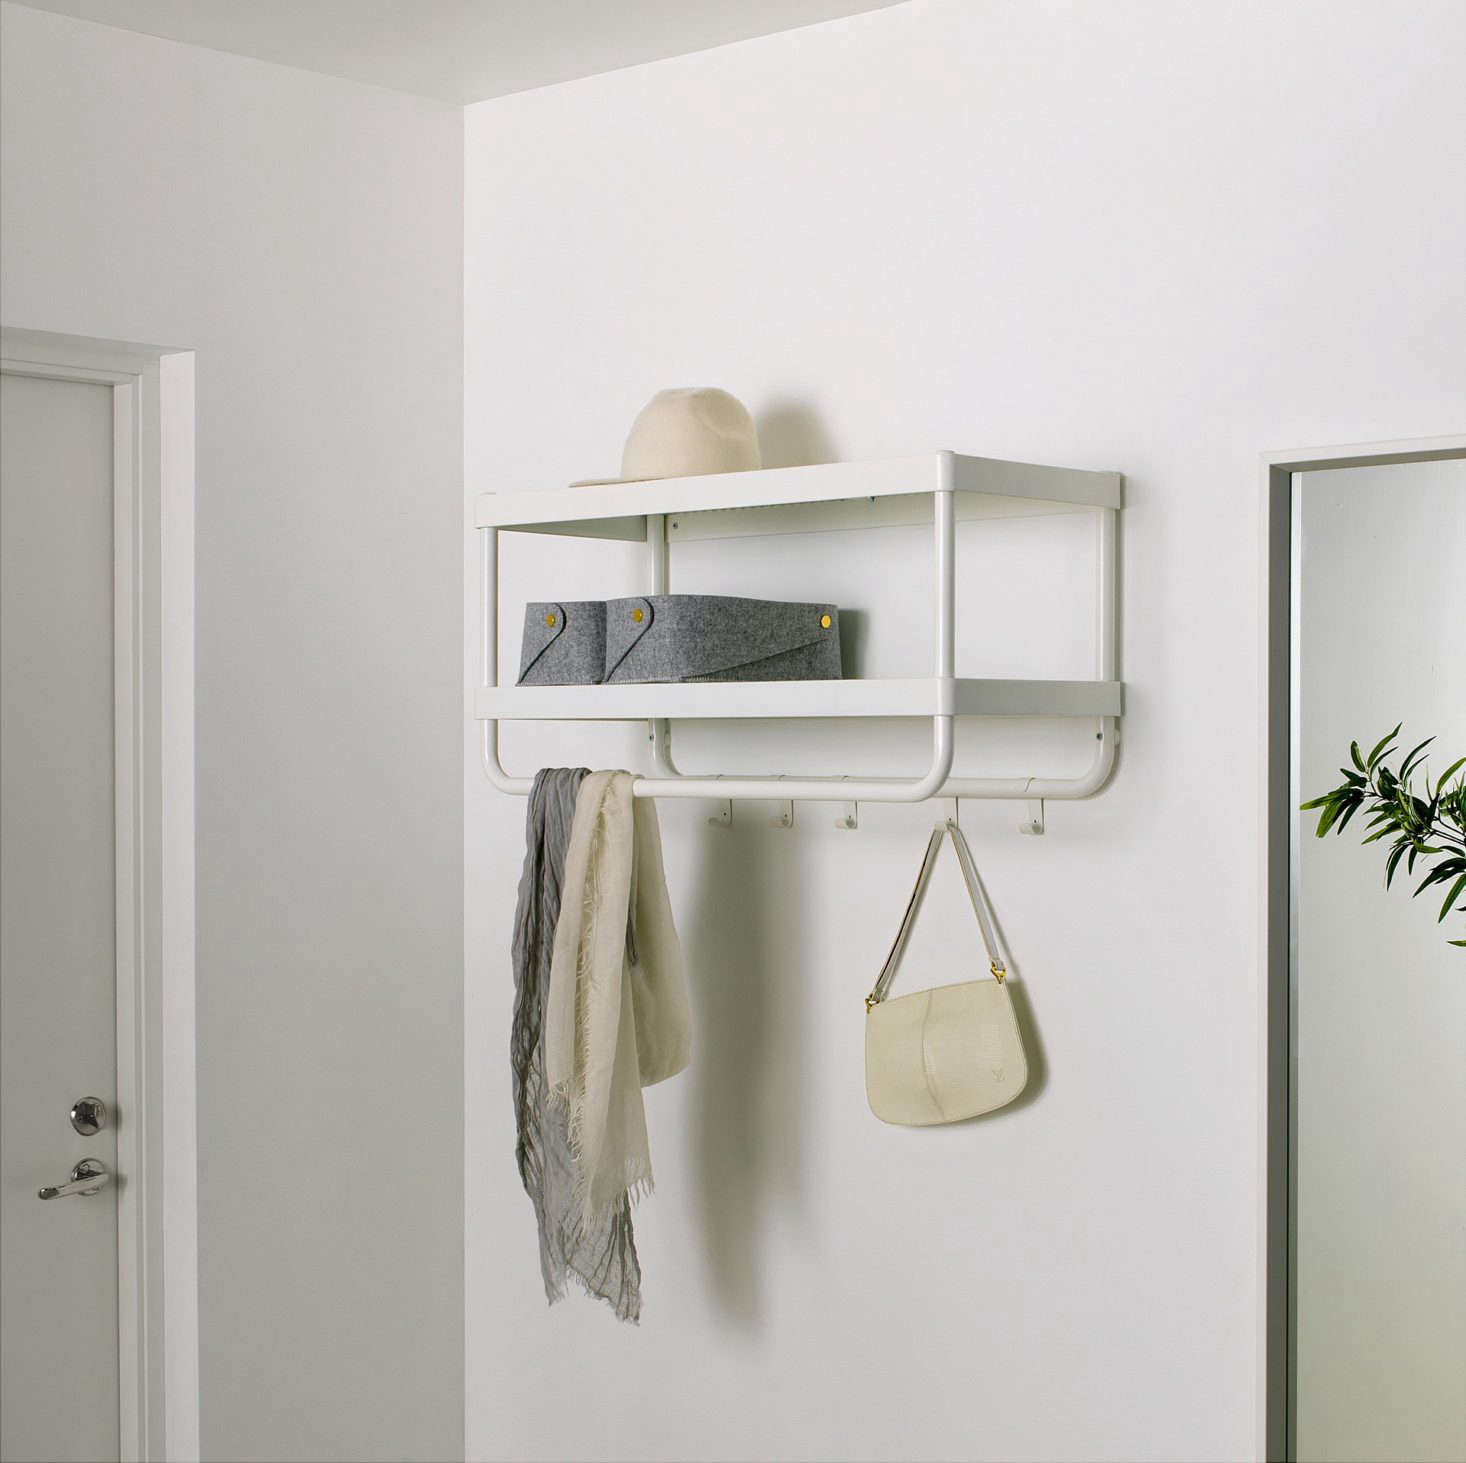 Ikea storage solutions for minimalists on a budget for Ikea coat and hat rack